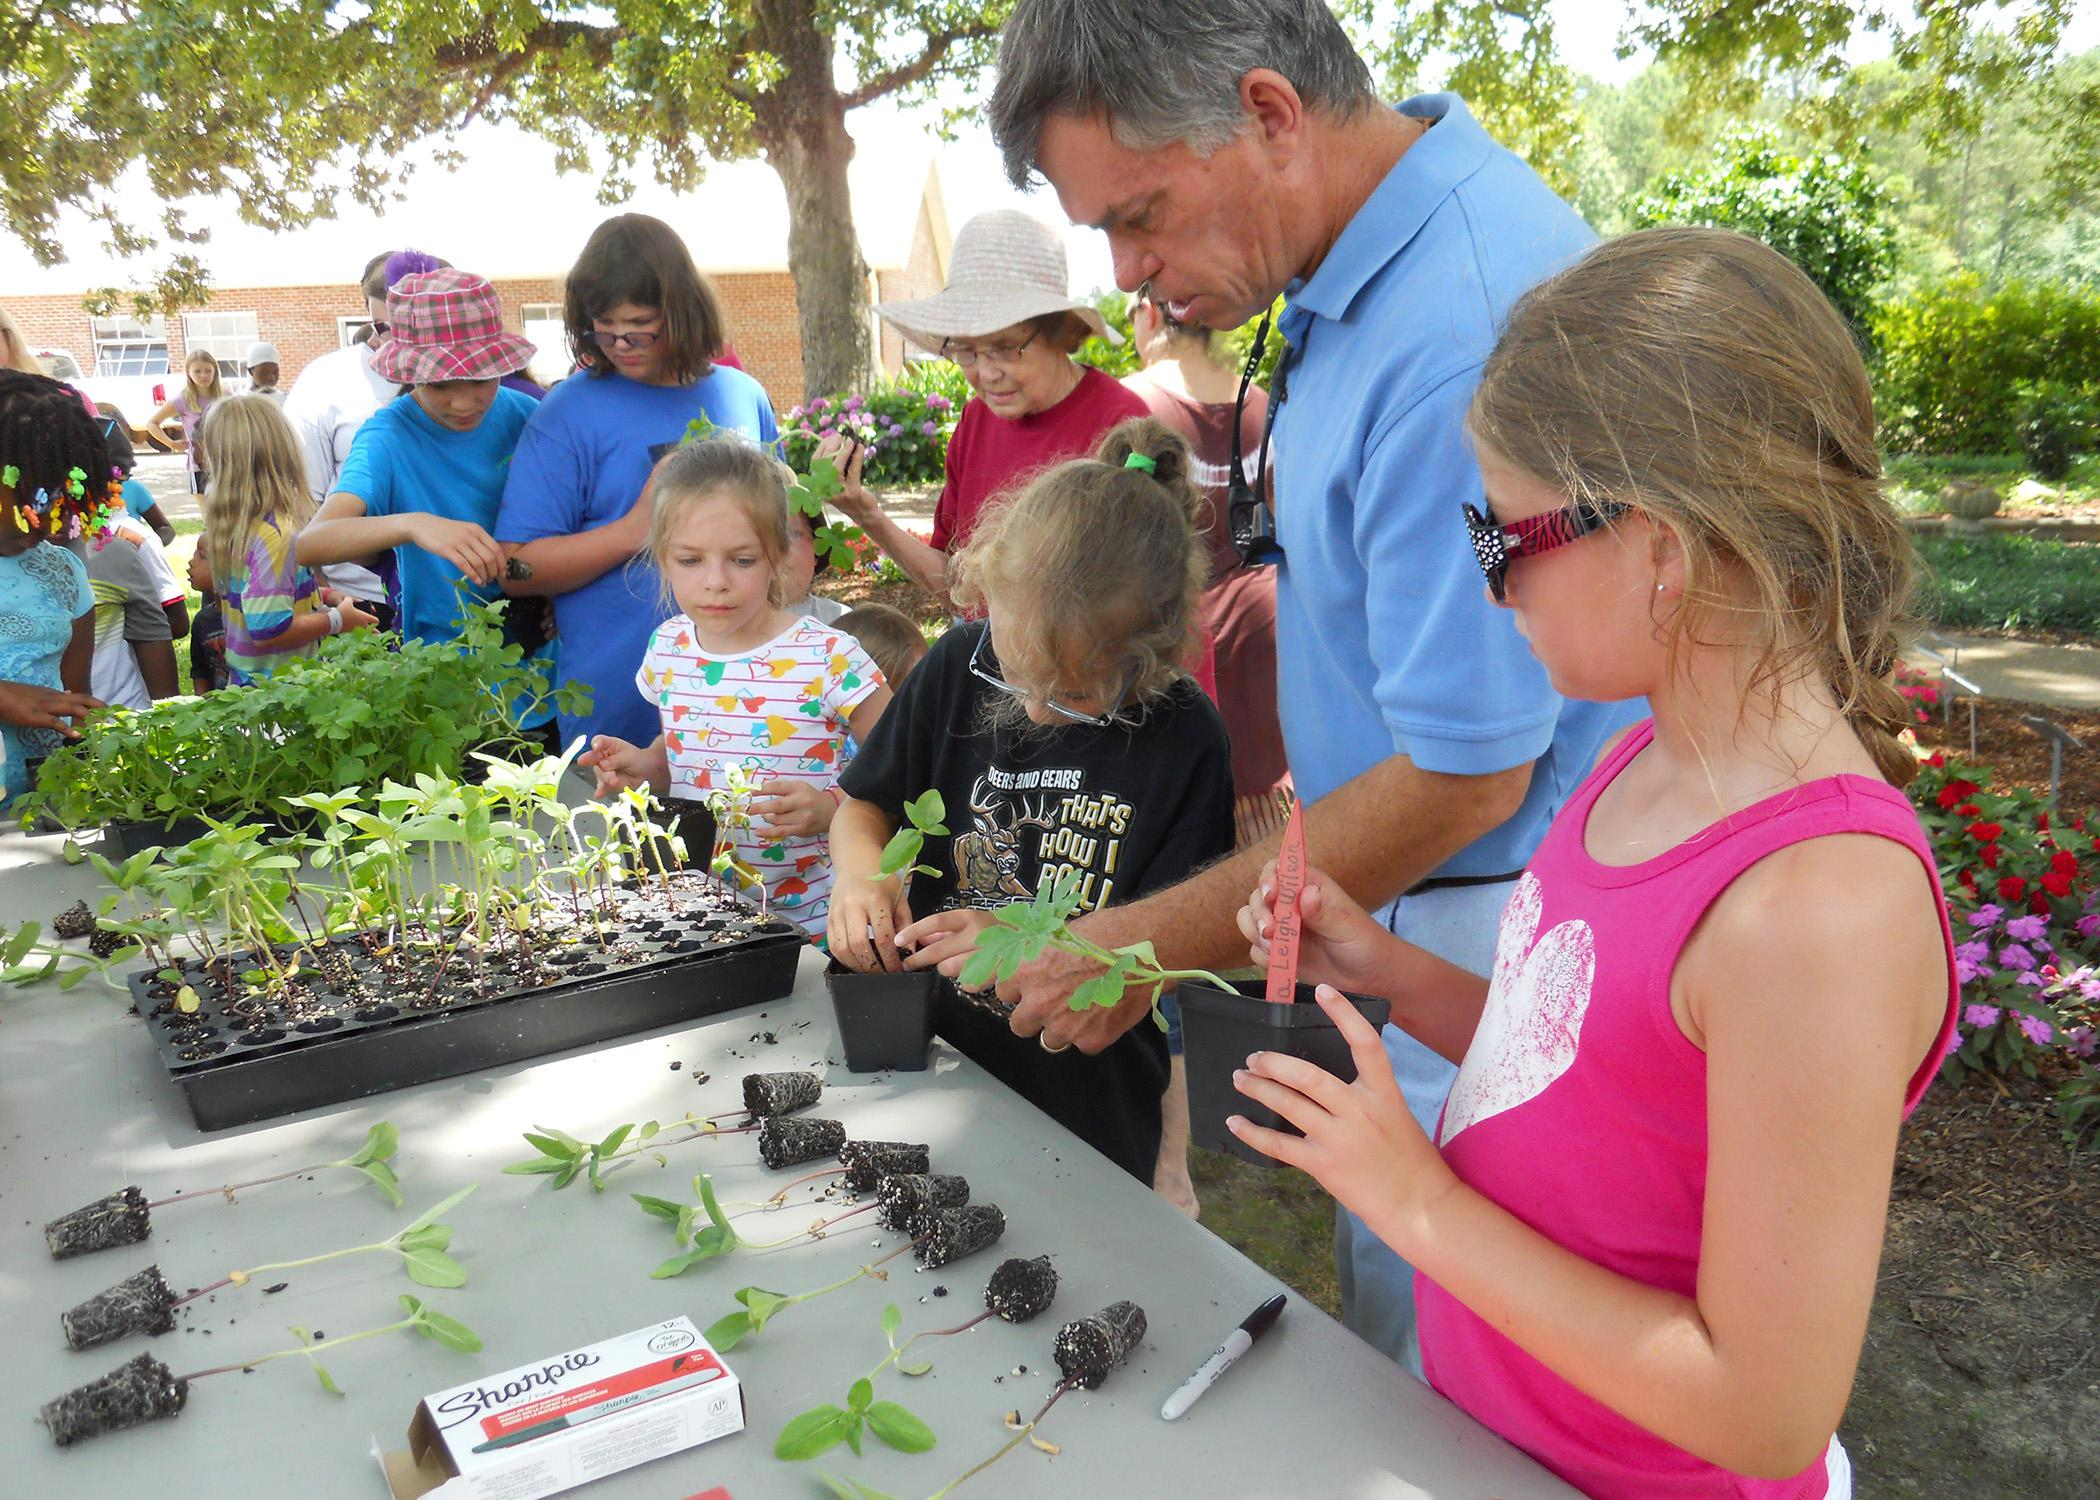 Bill Evans, center, helps Bayleigh Newman, left, and Olivia Leigh Williams, right, plant their watermelon seedlings at Mississippi State University's Truck Crops Station June 12. Employees at the station held a short program on gardening to complement the Dig into Reading theme of this year's statewide library summer reading program. (Photo by MSU Ag Communications/Susan Collins-Smith)